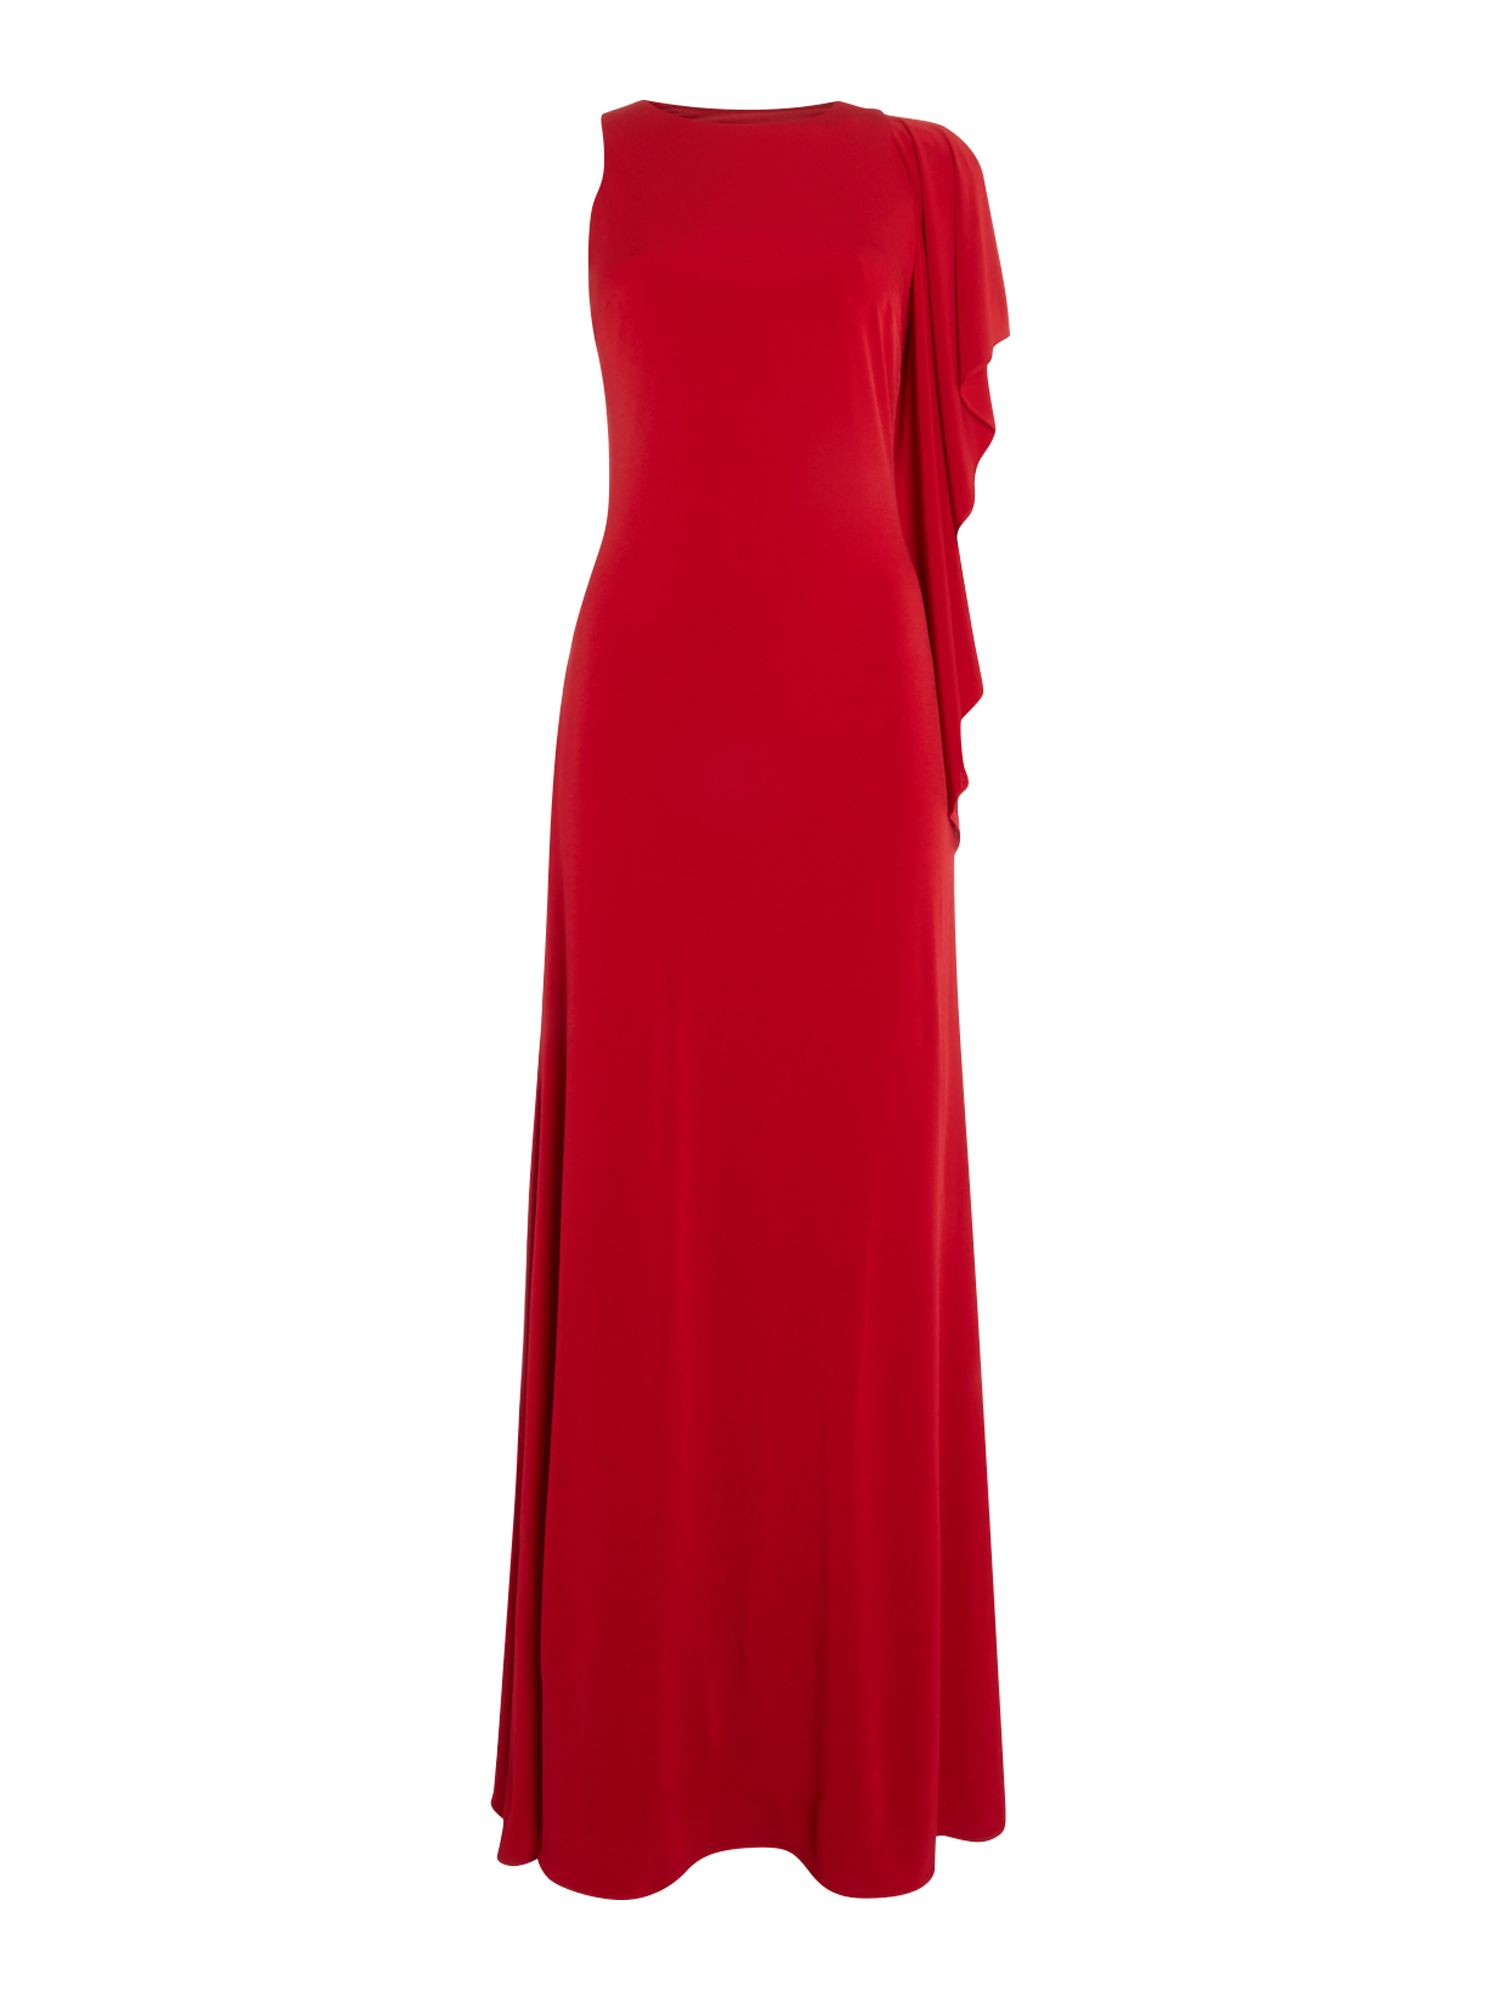 JS Collections Sleeveless crepe gown with side ruffle detail, Red